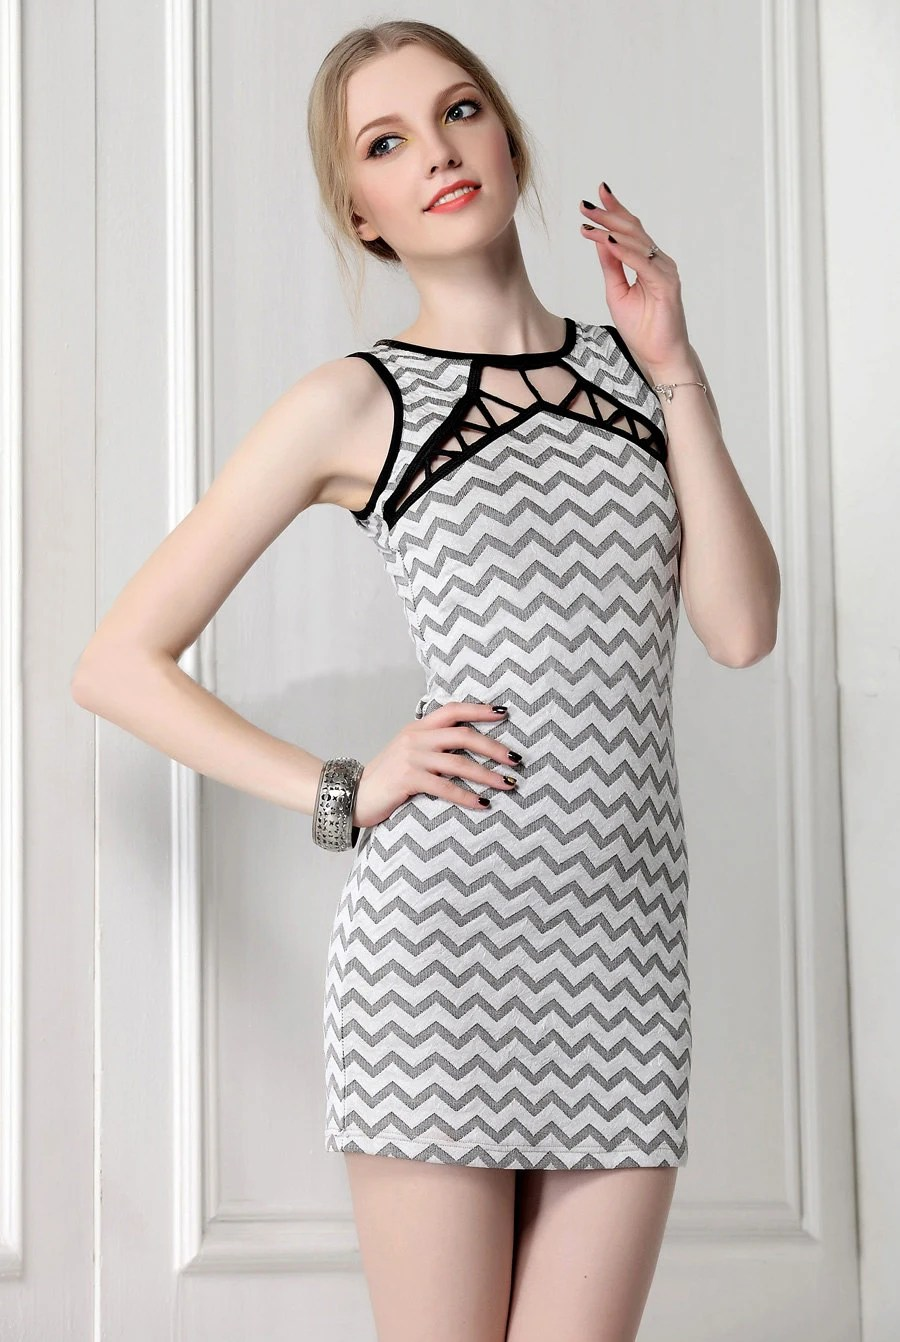 """Sexy """"Nasty Gal"""" style Vintage Wave Print, Black n' White Cross Criss Designed Knit Mini Party Dress, Dating Dress,Birthday Gift, Club Wear"""